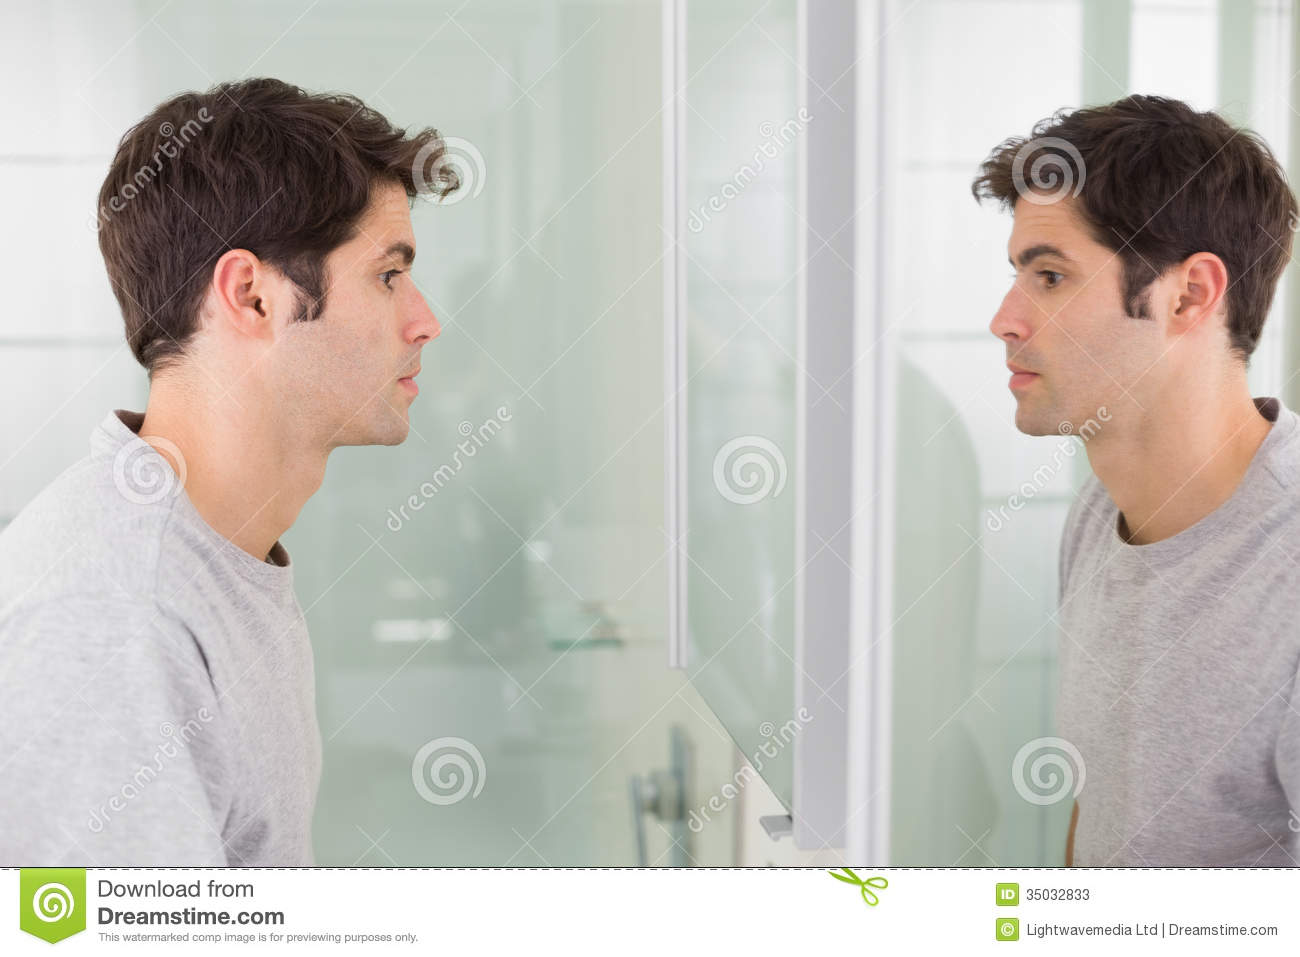 Tensed man looking at self in bathroom mirror stock image for Looking for mirrors